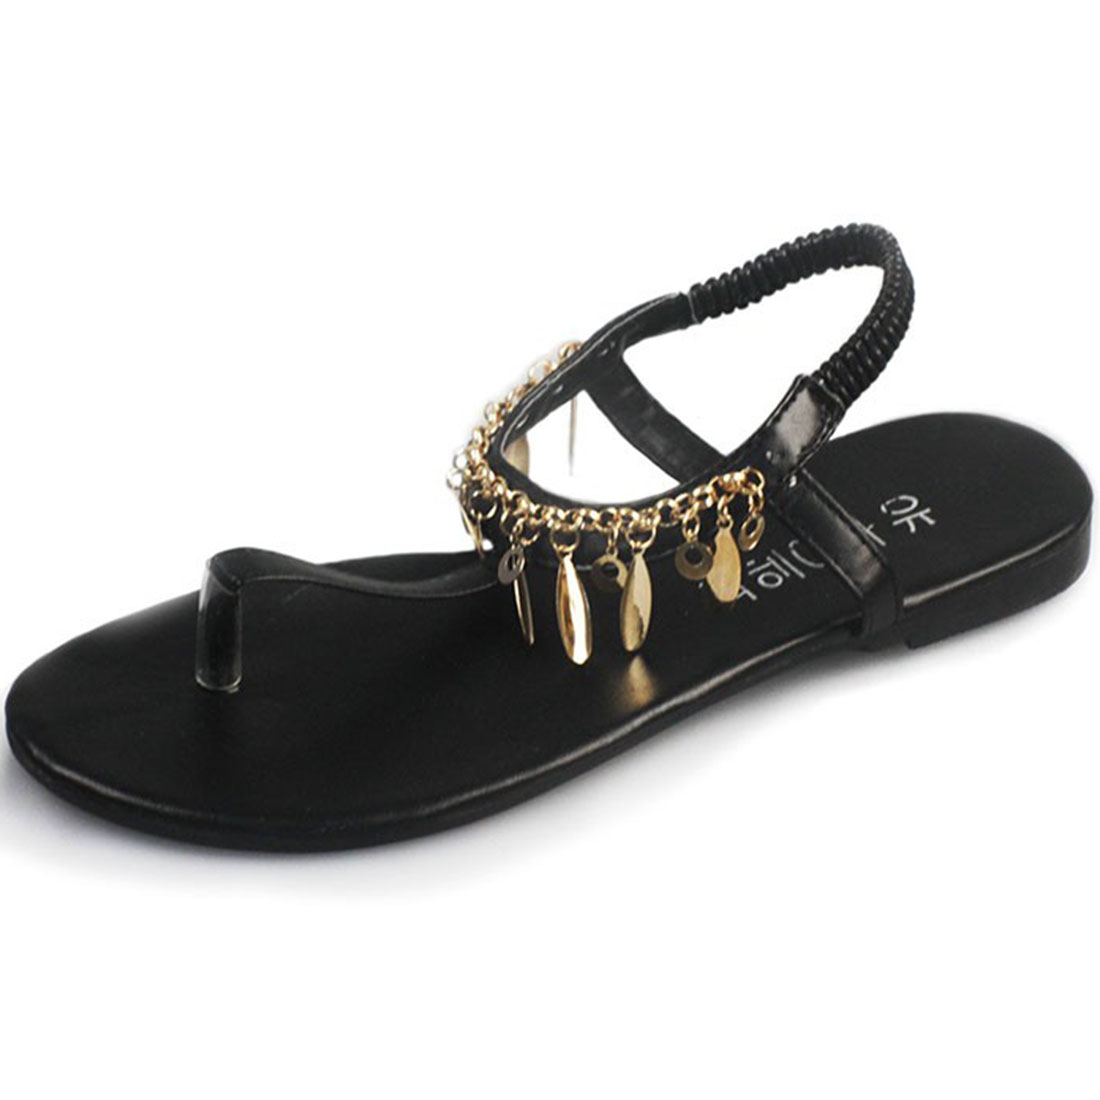 Crystal Gladiator Sandals Summer Flip Flops Casual Shoes Woman Slip On Flats Fringe Shoes Women Size 35-39 hee grand 2017 new gladiator sandals gold silver shoes woman summer flip flops slip on creepers casual women shoes xwz3847